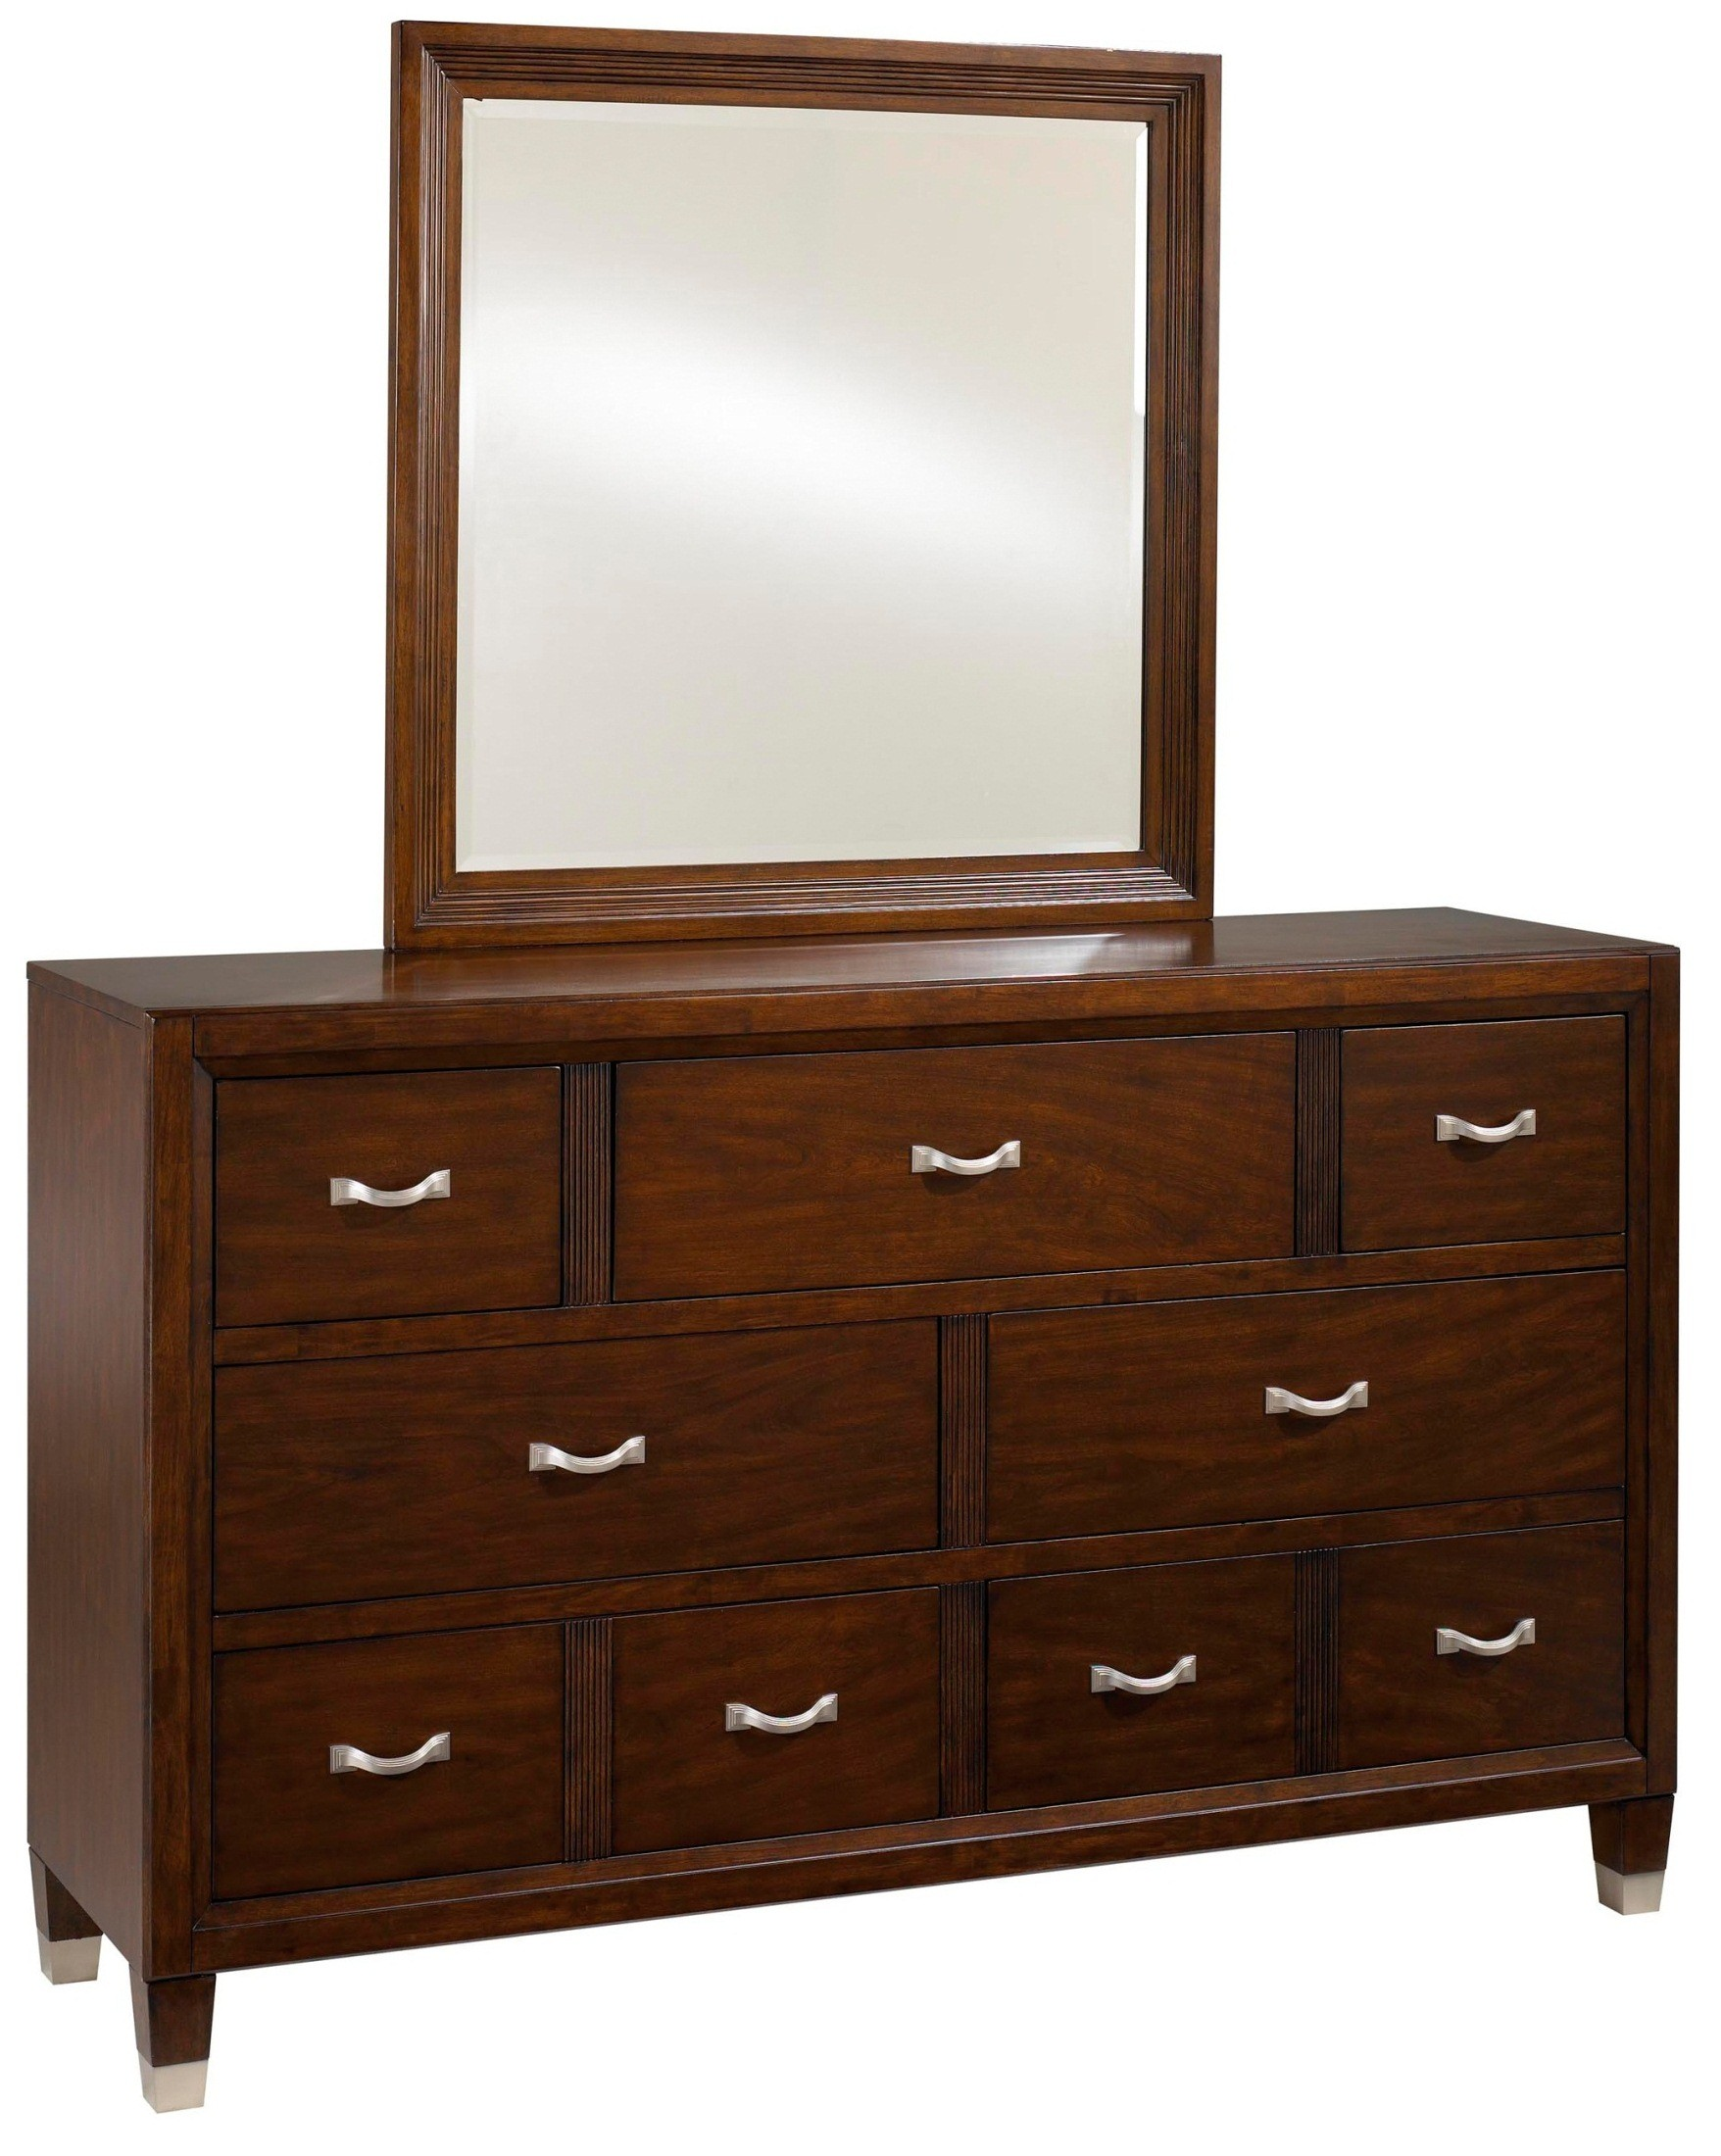 eastlake 2 panel bedroom set from broyhill 4264 250 261